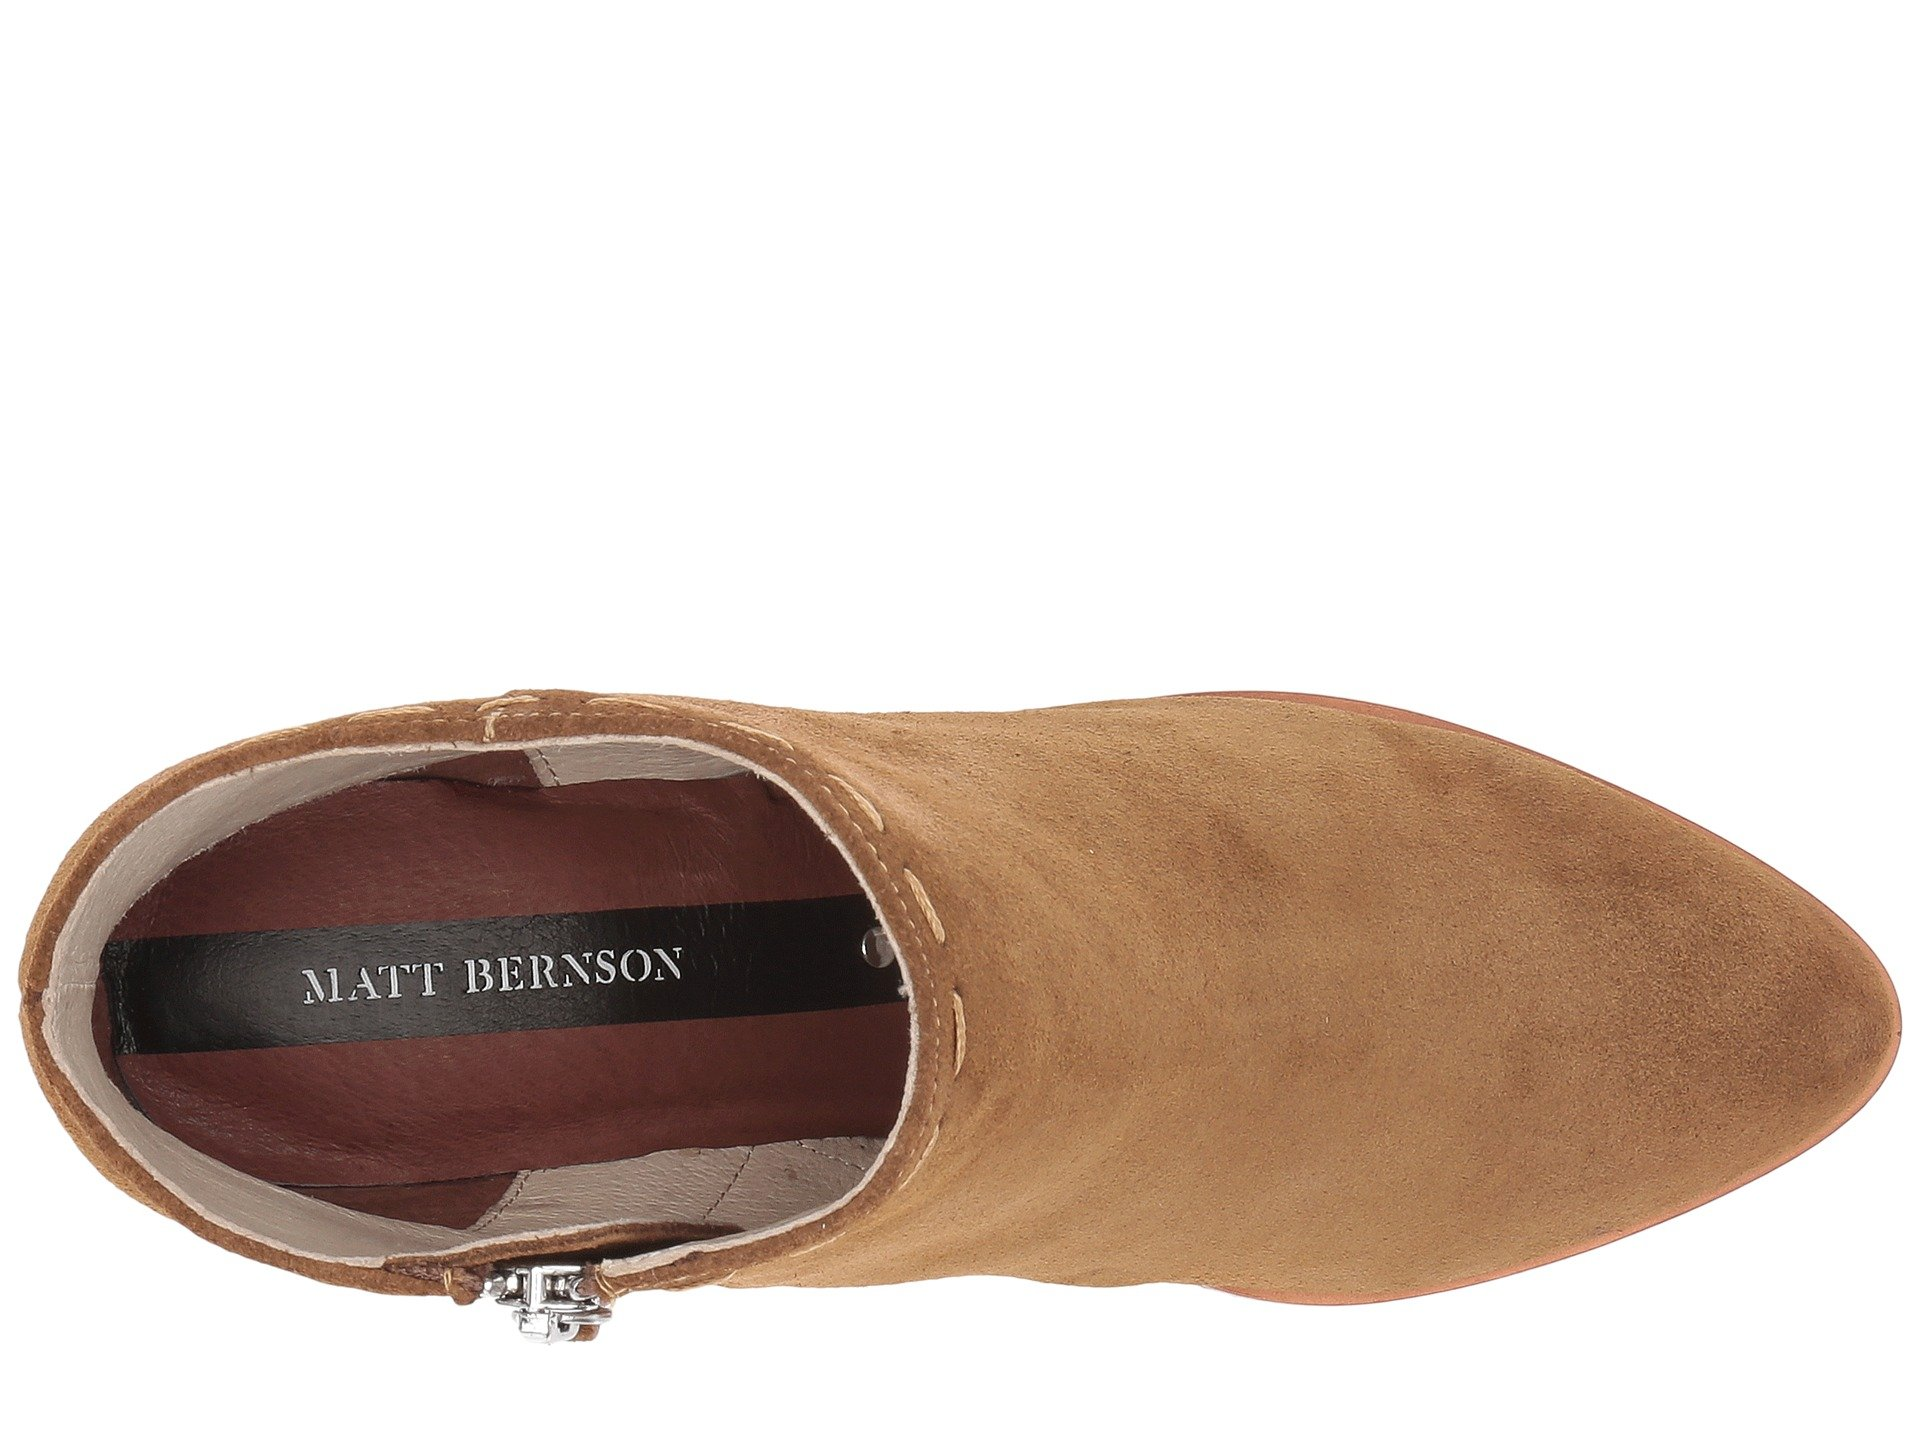 Shop a great selection of Matt Bernson at Nordstrom Rack. Find designer Matt Bernson up to 70% off and get free shipping on orders over $